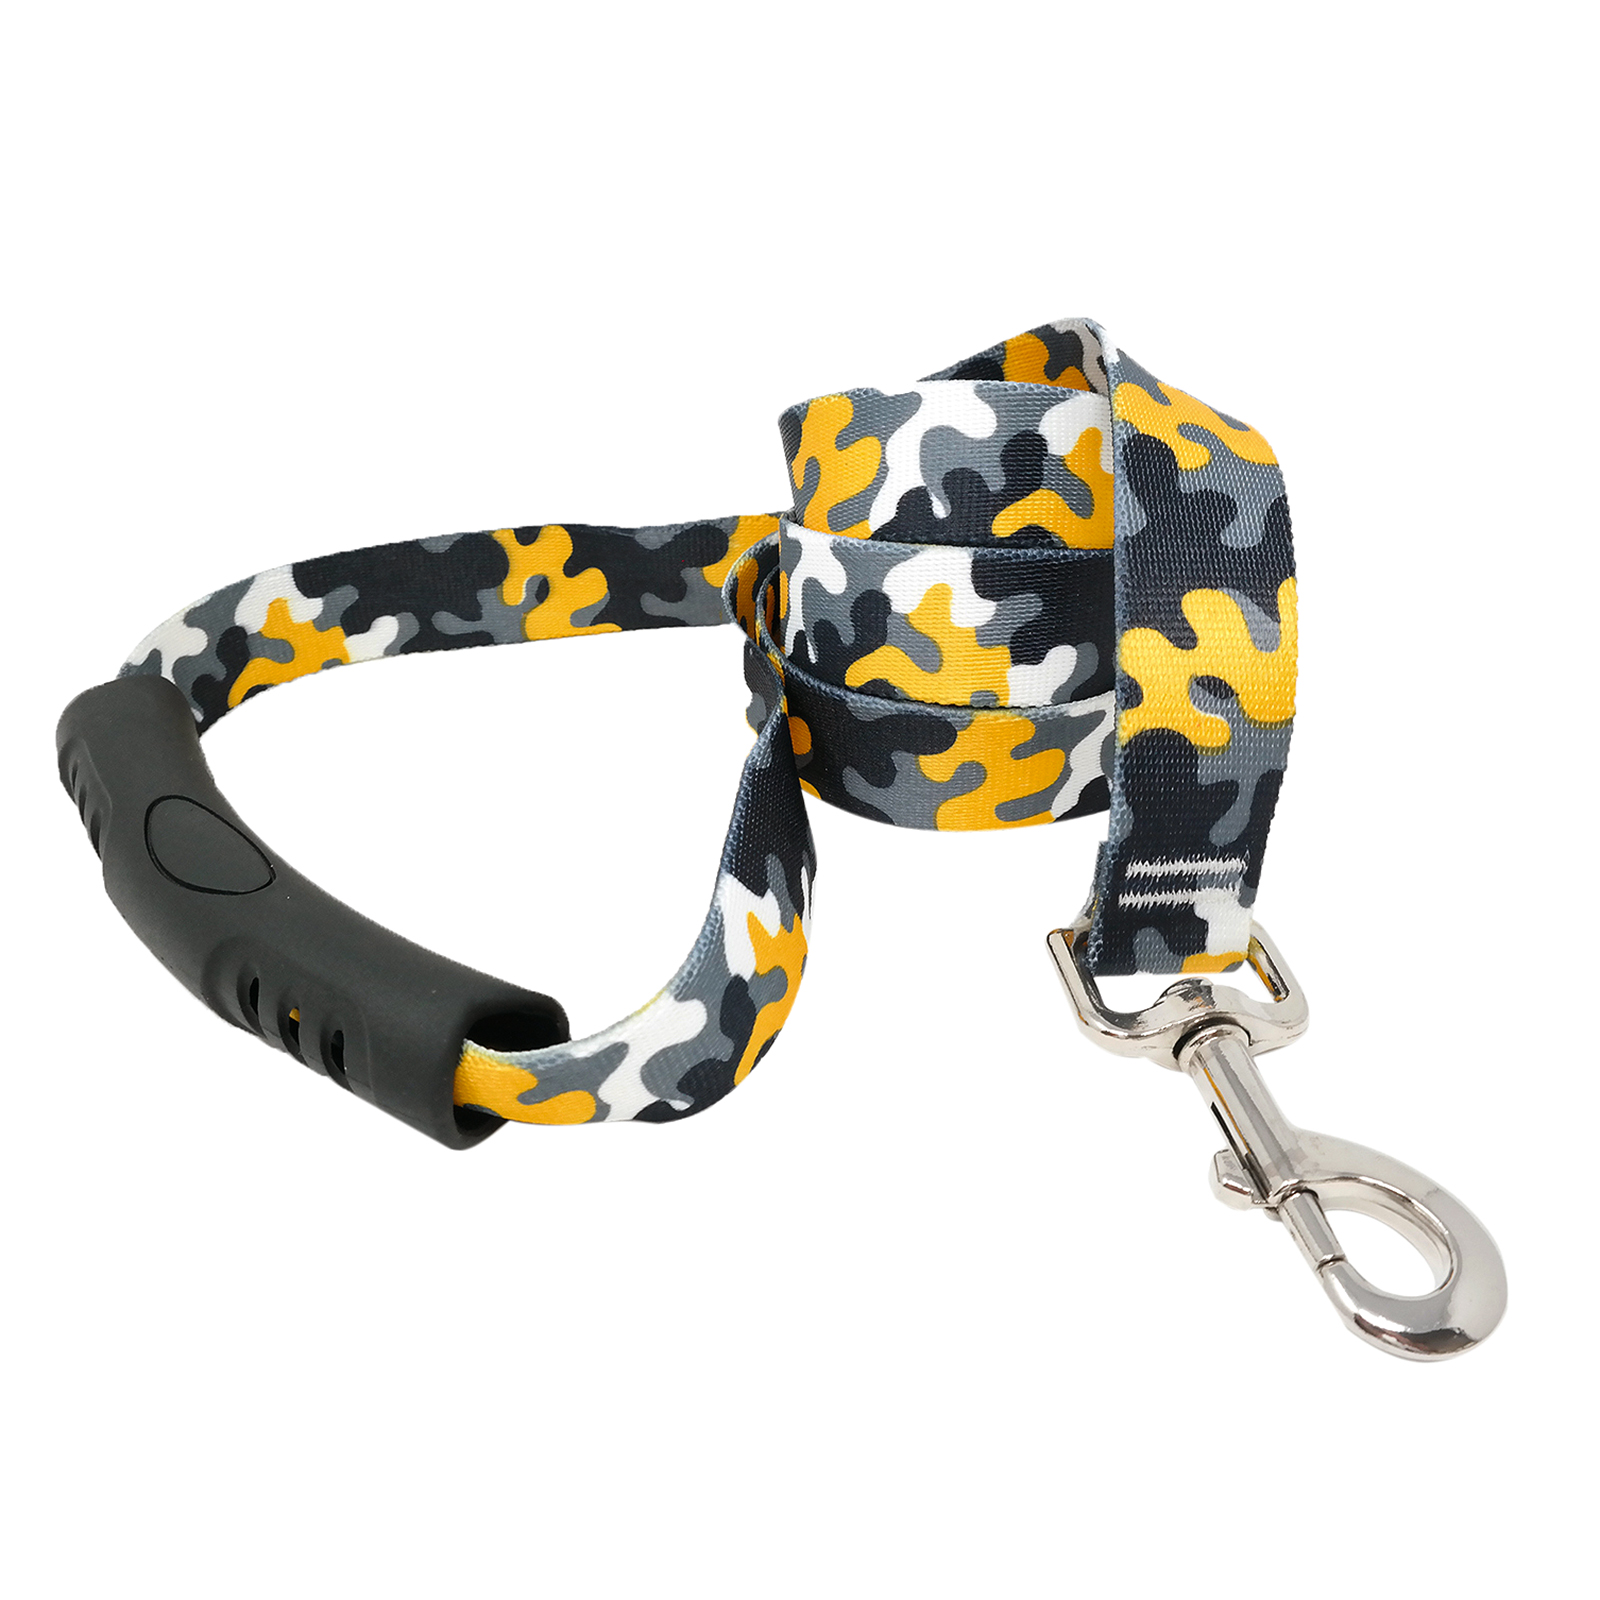 Black & Gold Camo EZ-Lead